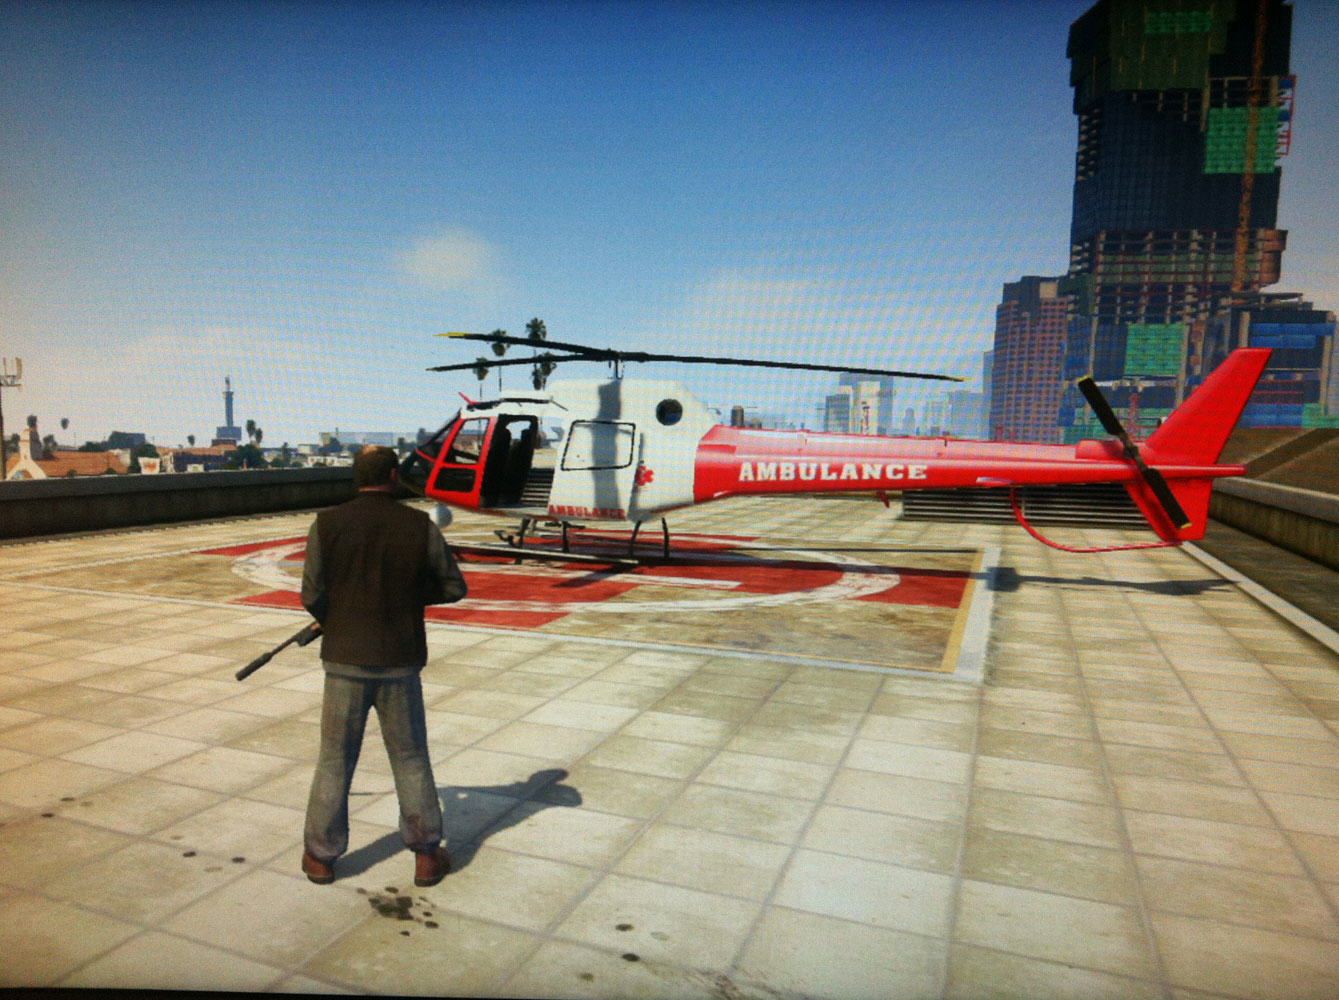 Police Hunt For Bad Santa Who Stole Helicopter gta v helicopter location 4